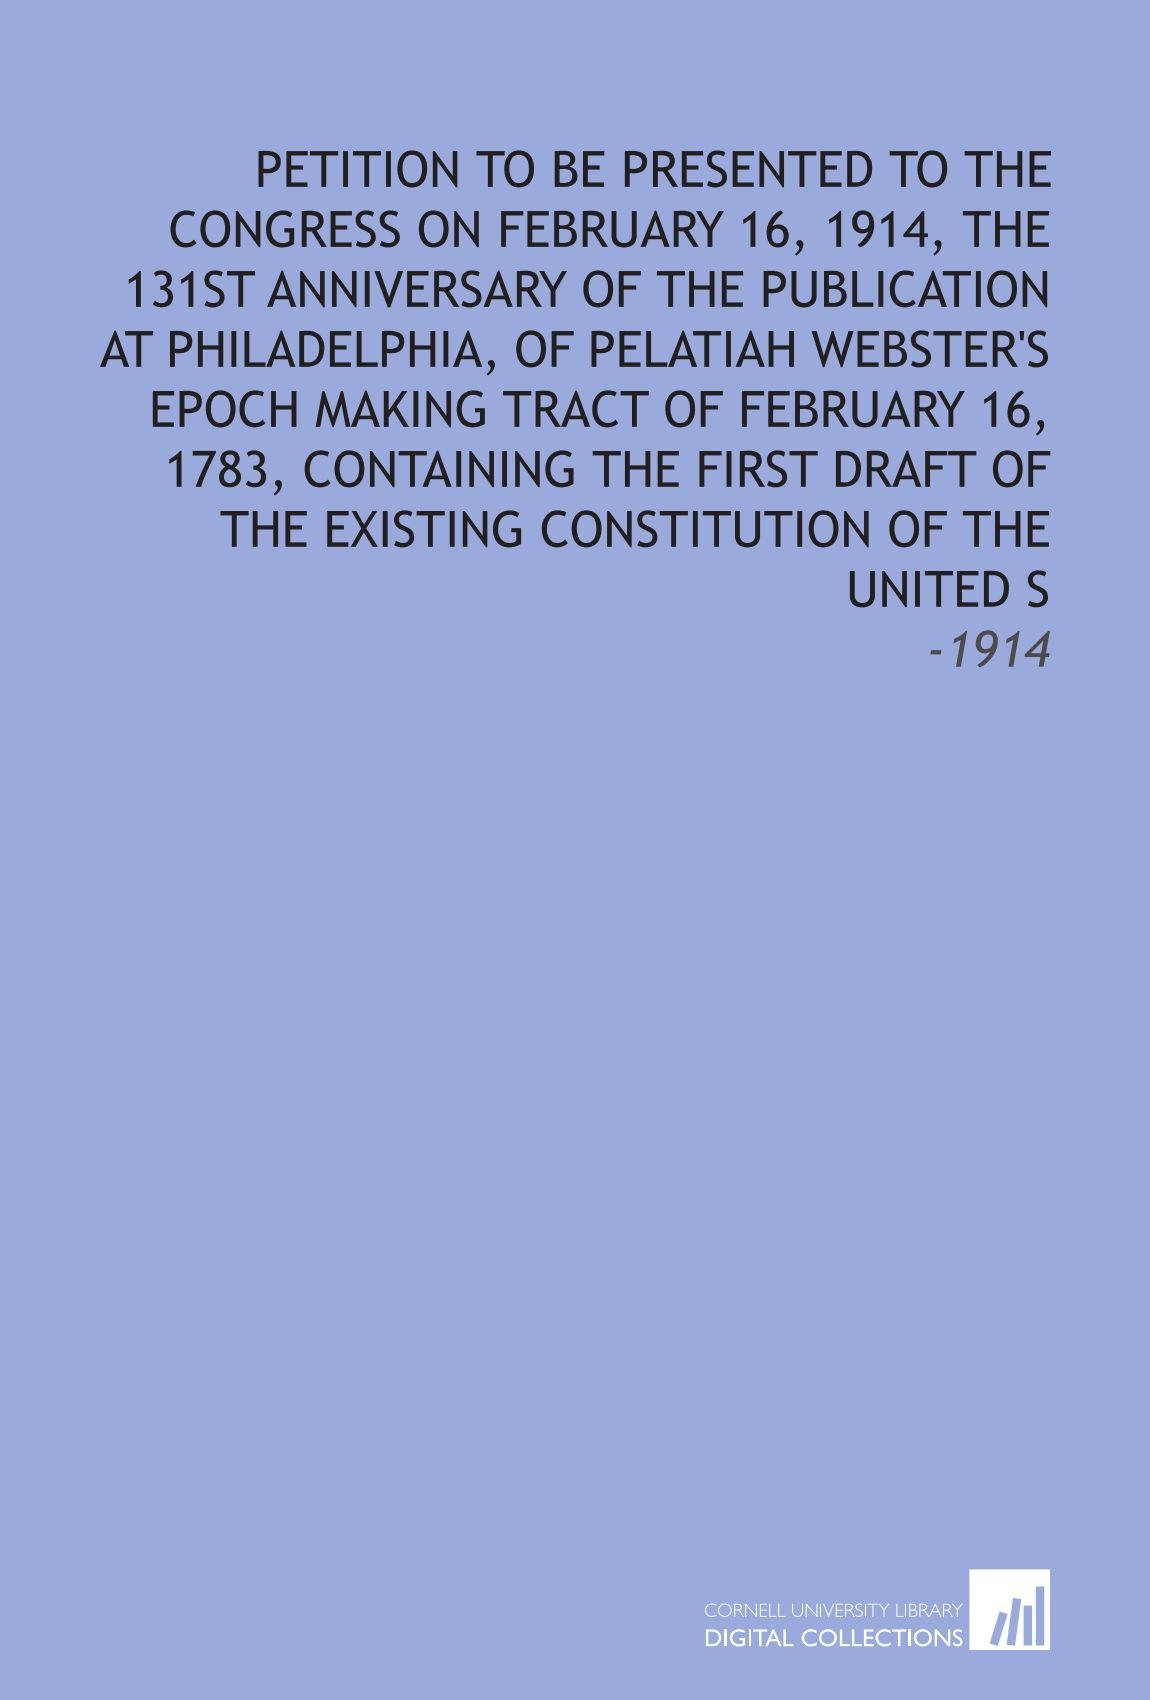 Petition to Be Presented to the Congress on February 16, 1914, the 131st Anniversary of the Publication at Philadelphia, of Pelatiah Webster's Epoch ... Existing Constitution of the United S: -1914 PDF